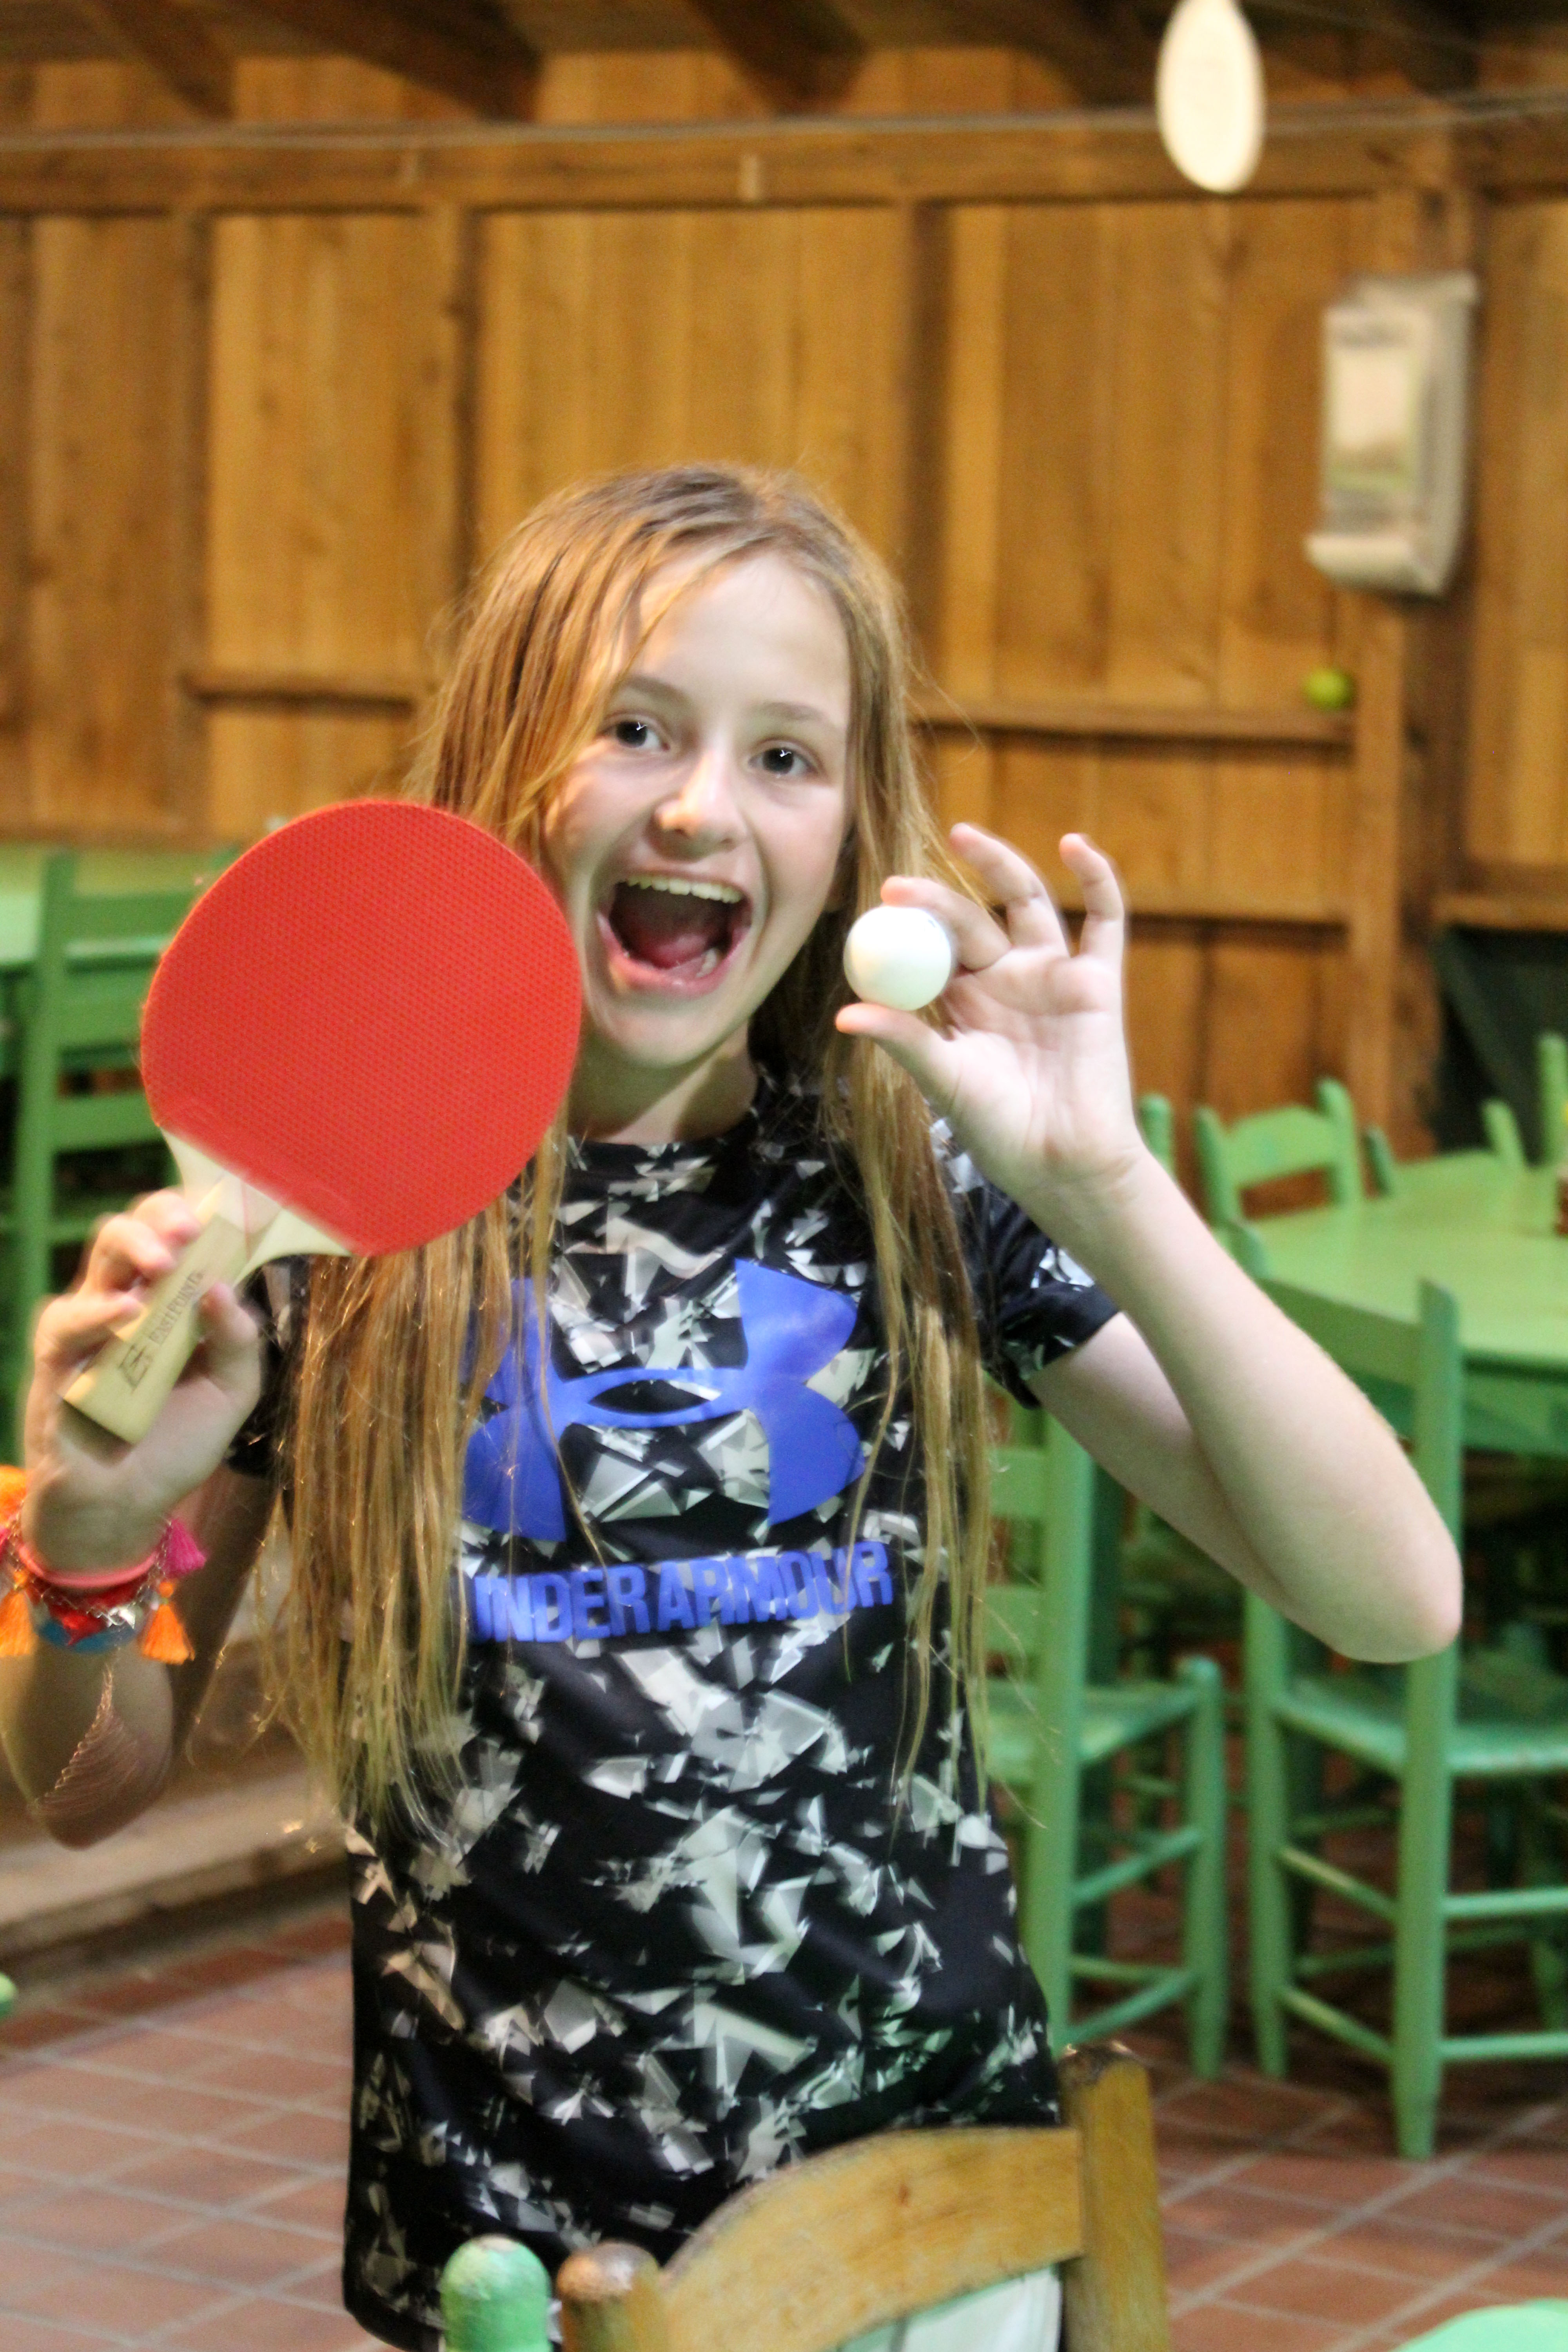 Camp Girl with ping pong paddle and ball